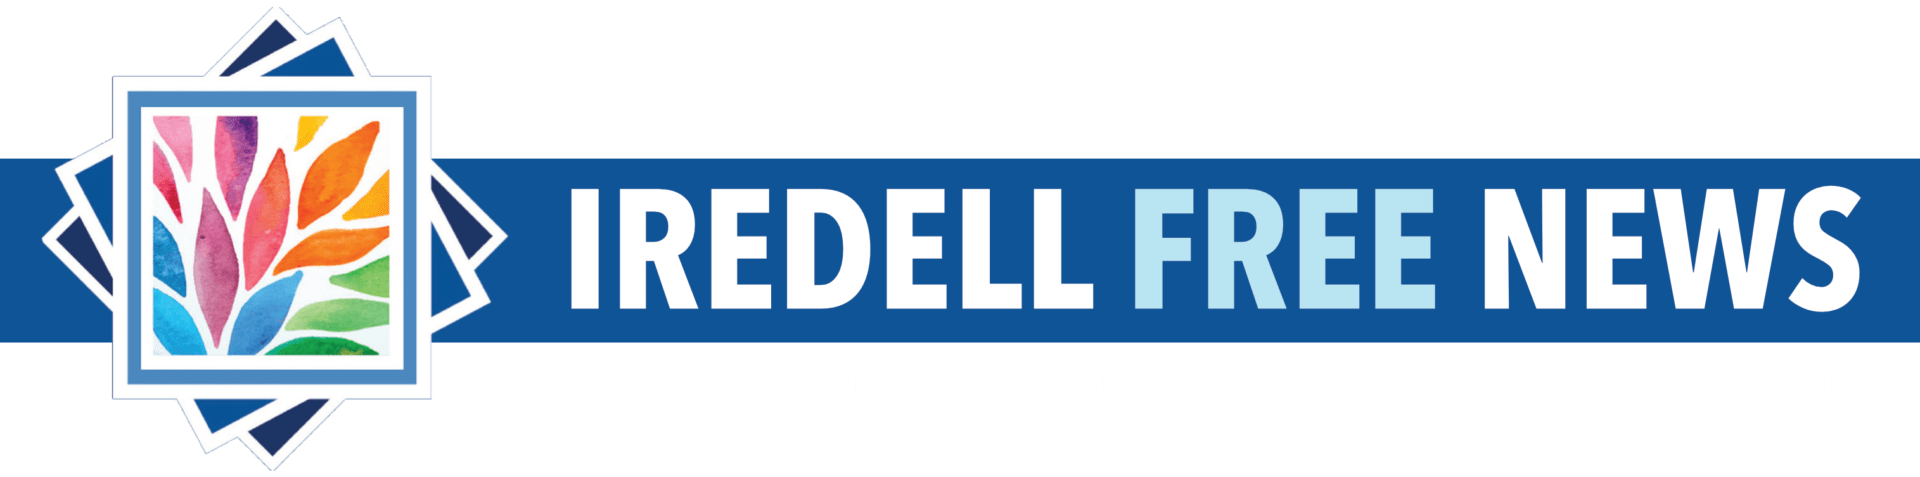 Iredell Free News